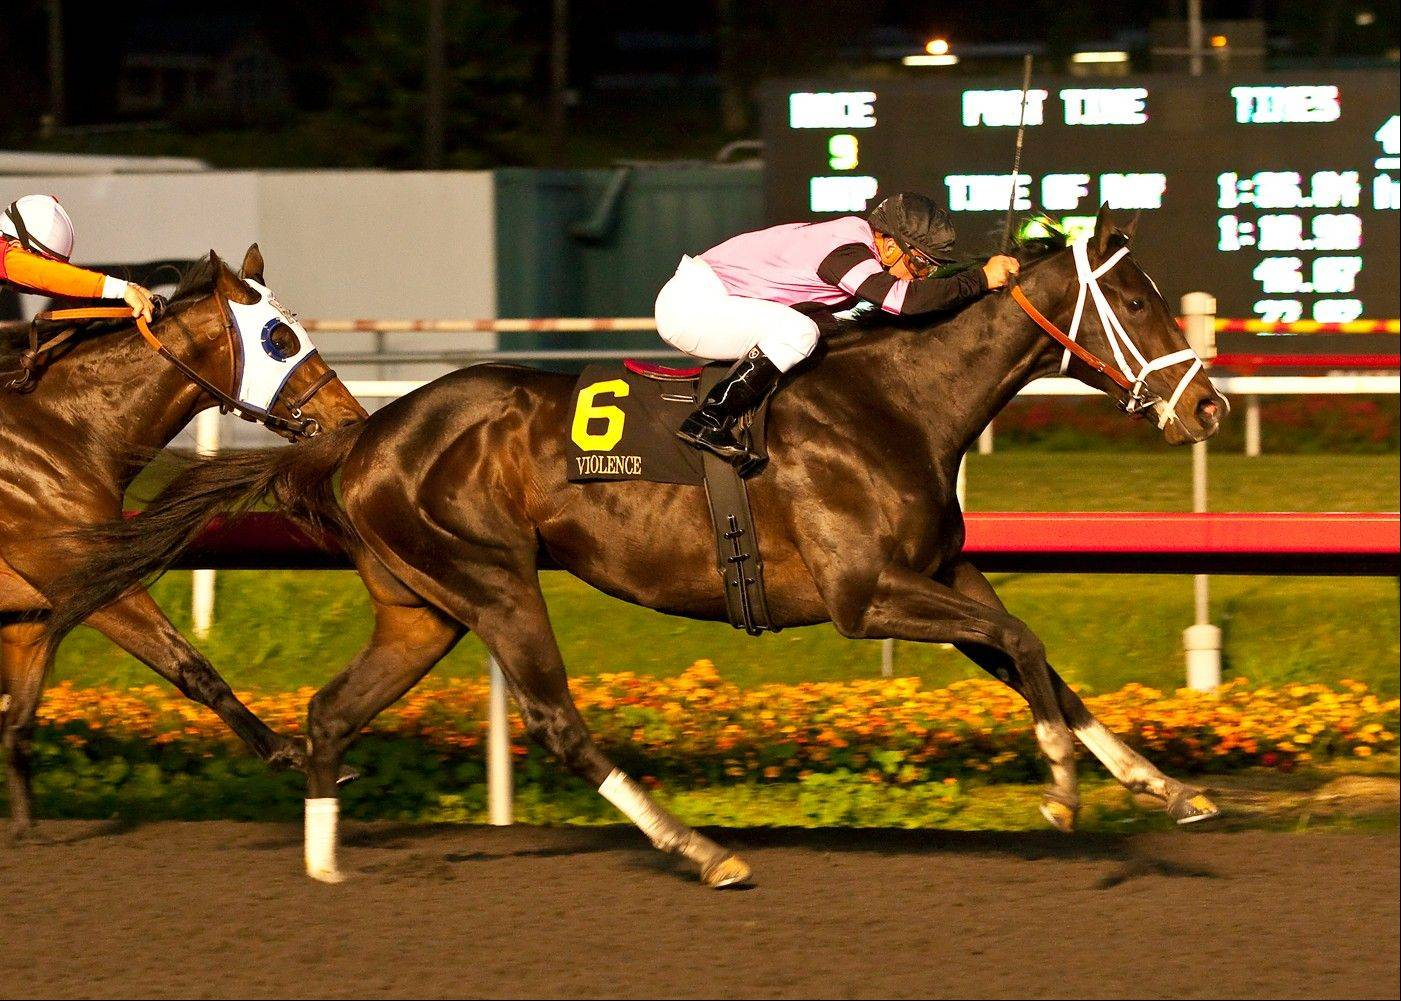 FILE - In this Dec. 15, 2012 photo released by Benoit Photo, Violence with Javier Castellano up, right, is shown winning the Grade I $750,000 CashCall Futurity at Betfair Hollywood Park, Inglewood, Calif. Todd Pletcher's promising 3-year-olds pick up the pace this weekend on the road to the Kentucky Derby, with Violence set for the Fountain of Youth and Palace Malice the Risen Star.